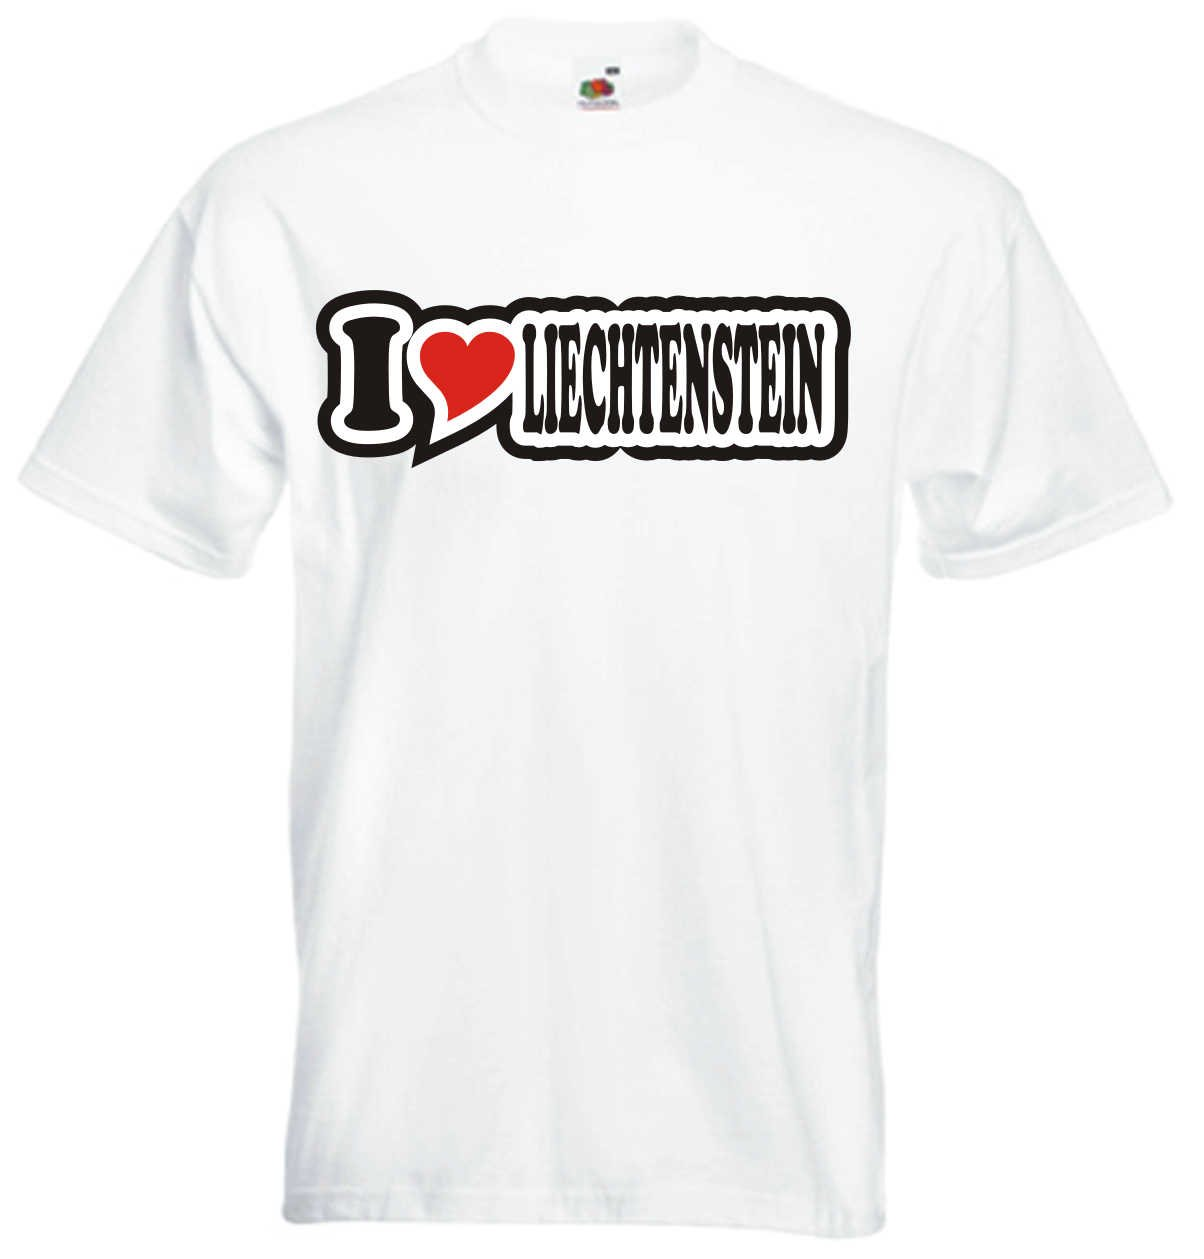 I Love Heart T-Shirt Men I LOVE LIECHTENSTEIN Black Dragon